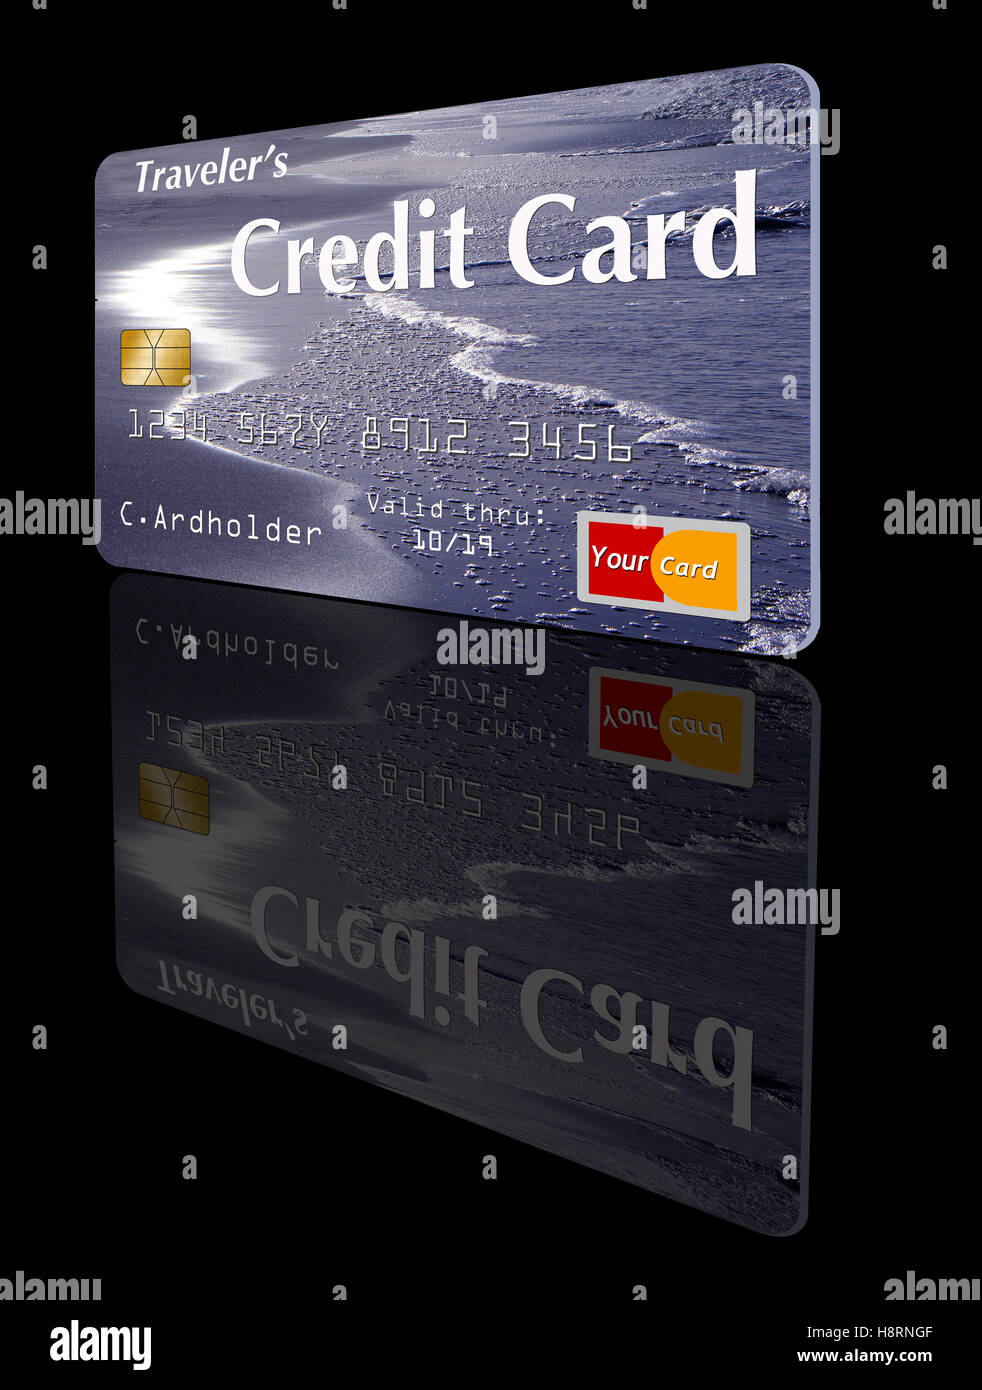 This is a photo illustration of a safe to publish credit card (generic) with the theme of travel and a beach scene - Stock Image